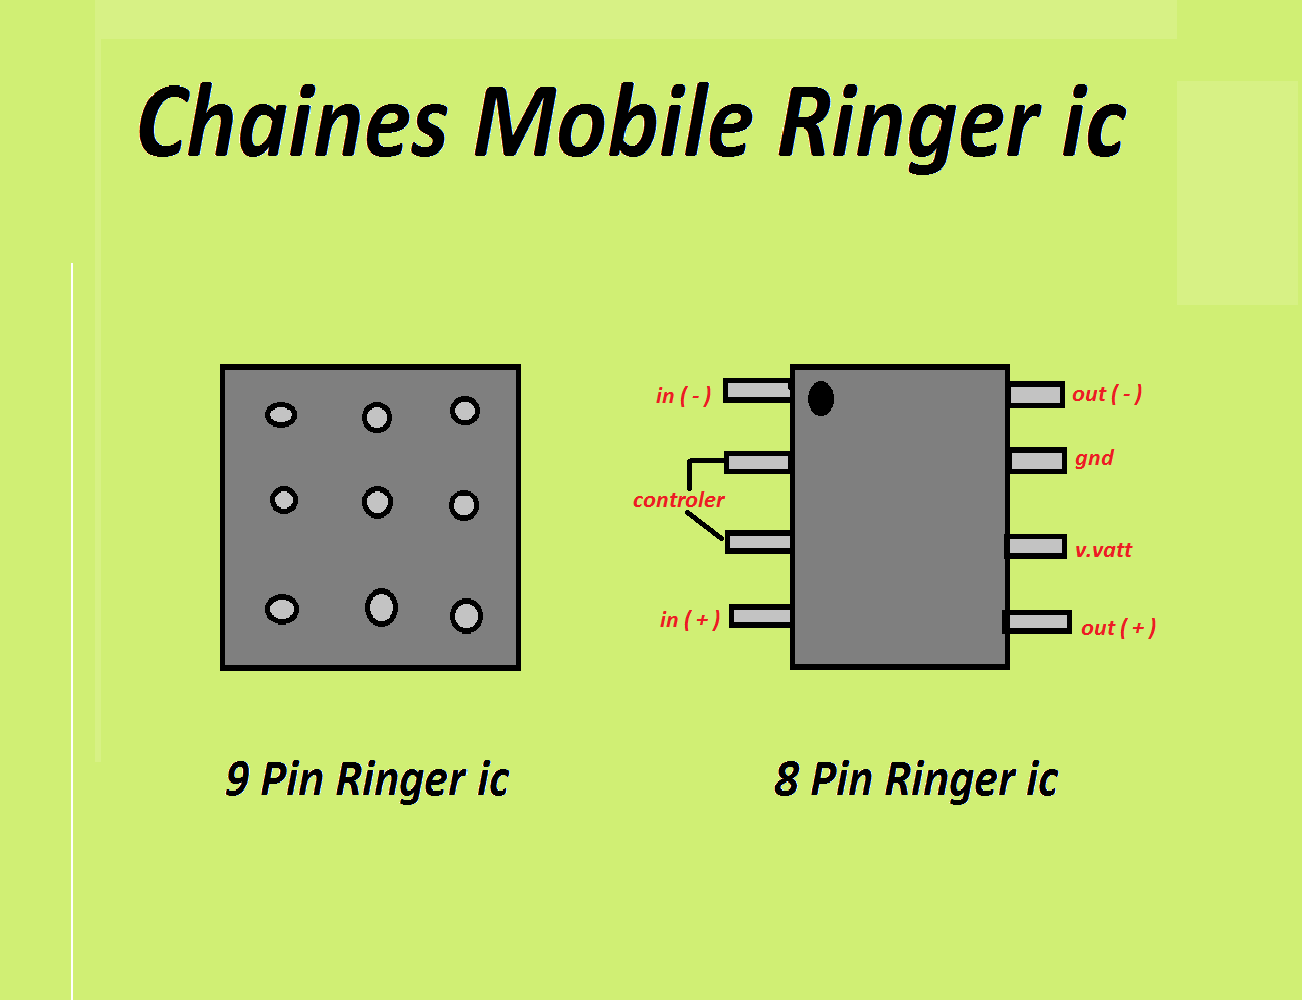 Jp Advance Technical : All China Mobile Ringer Ic Problem